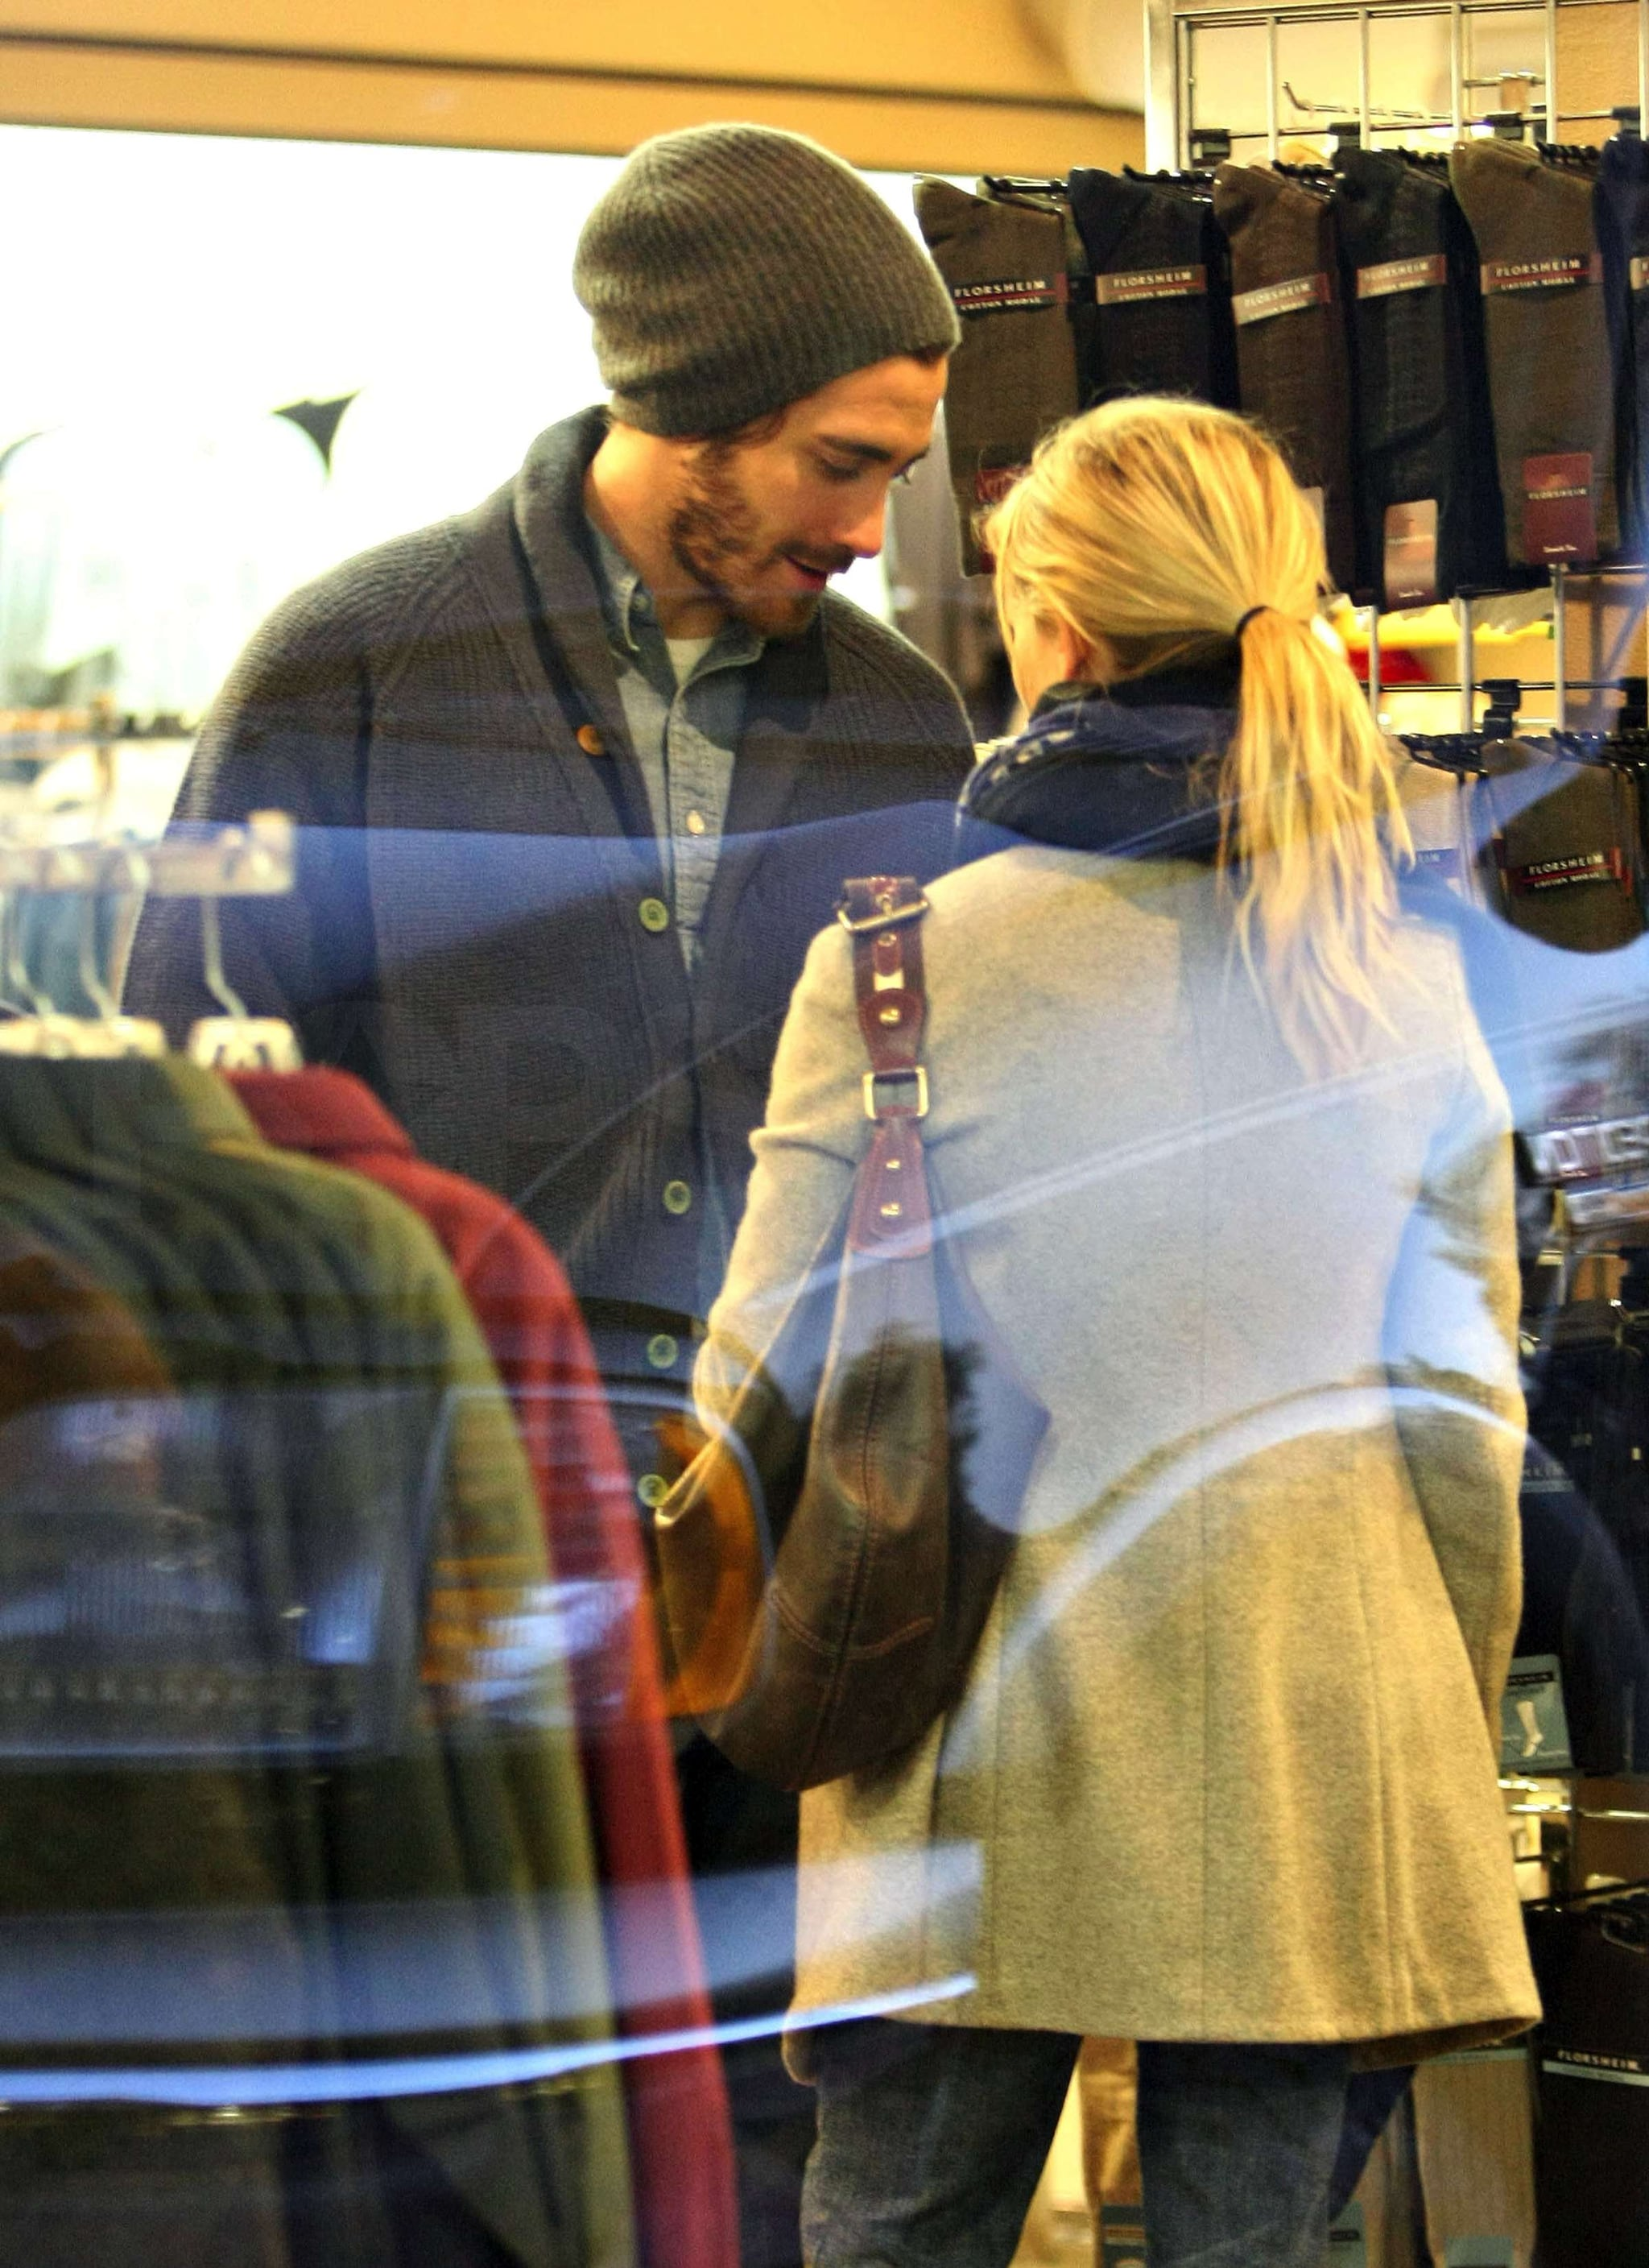 Photos Of Reese Witherspoon And Jake Gyllenhaal In Ojai